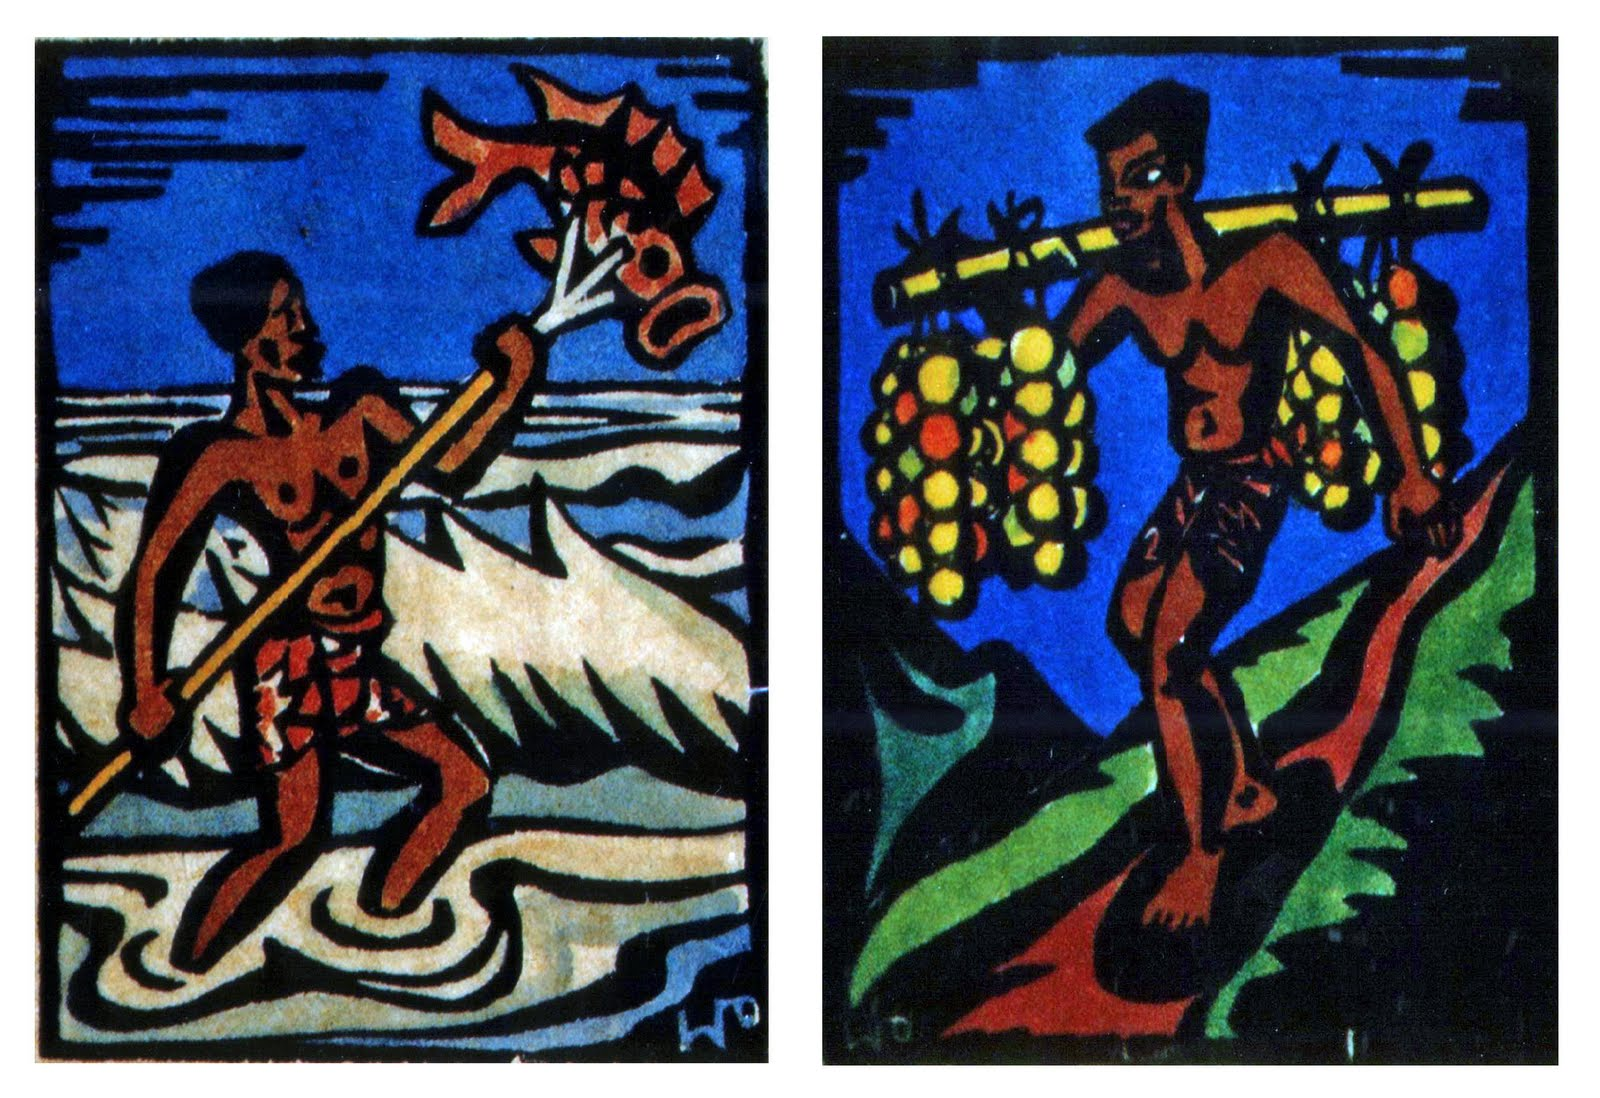 Spear fisherman and fruit bearer, watercolored hand prints, no date, family-owned